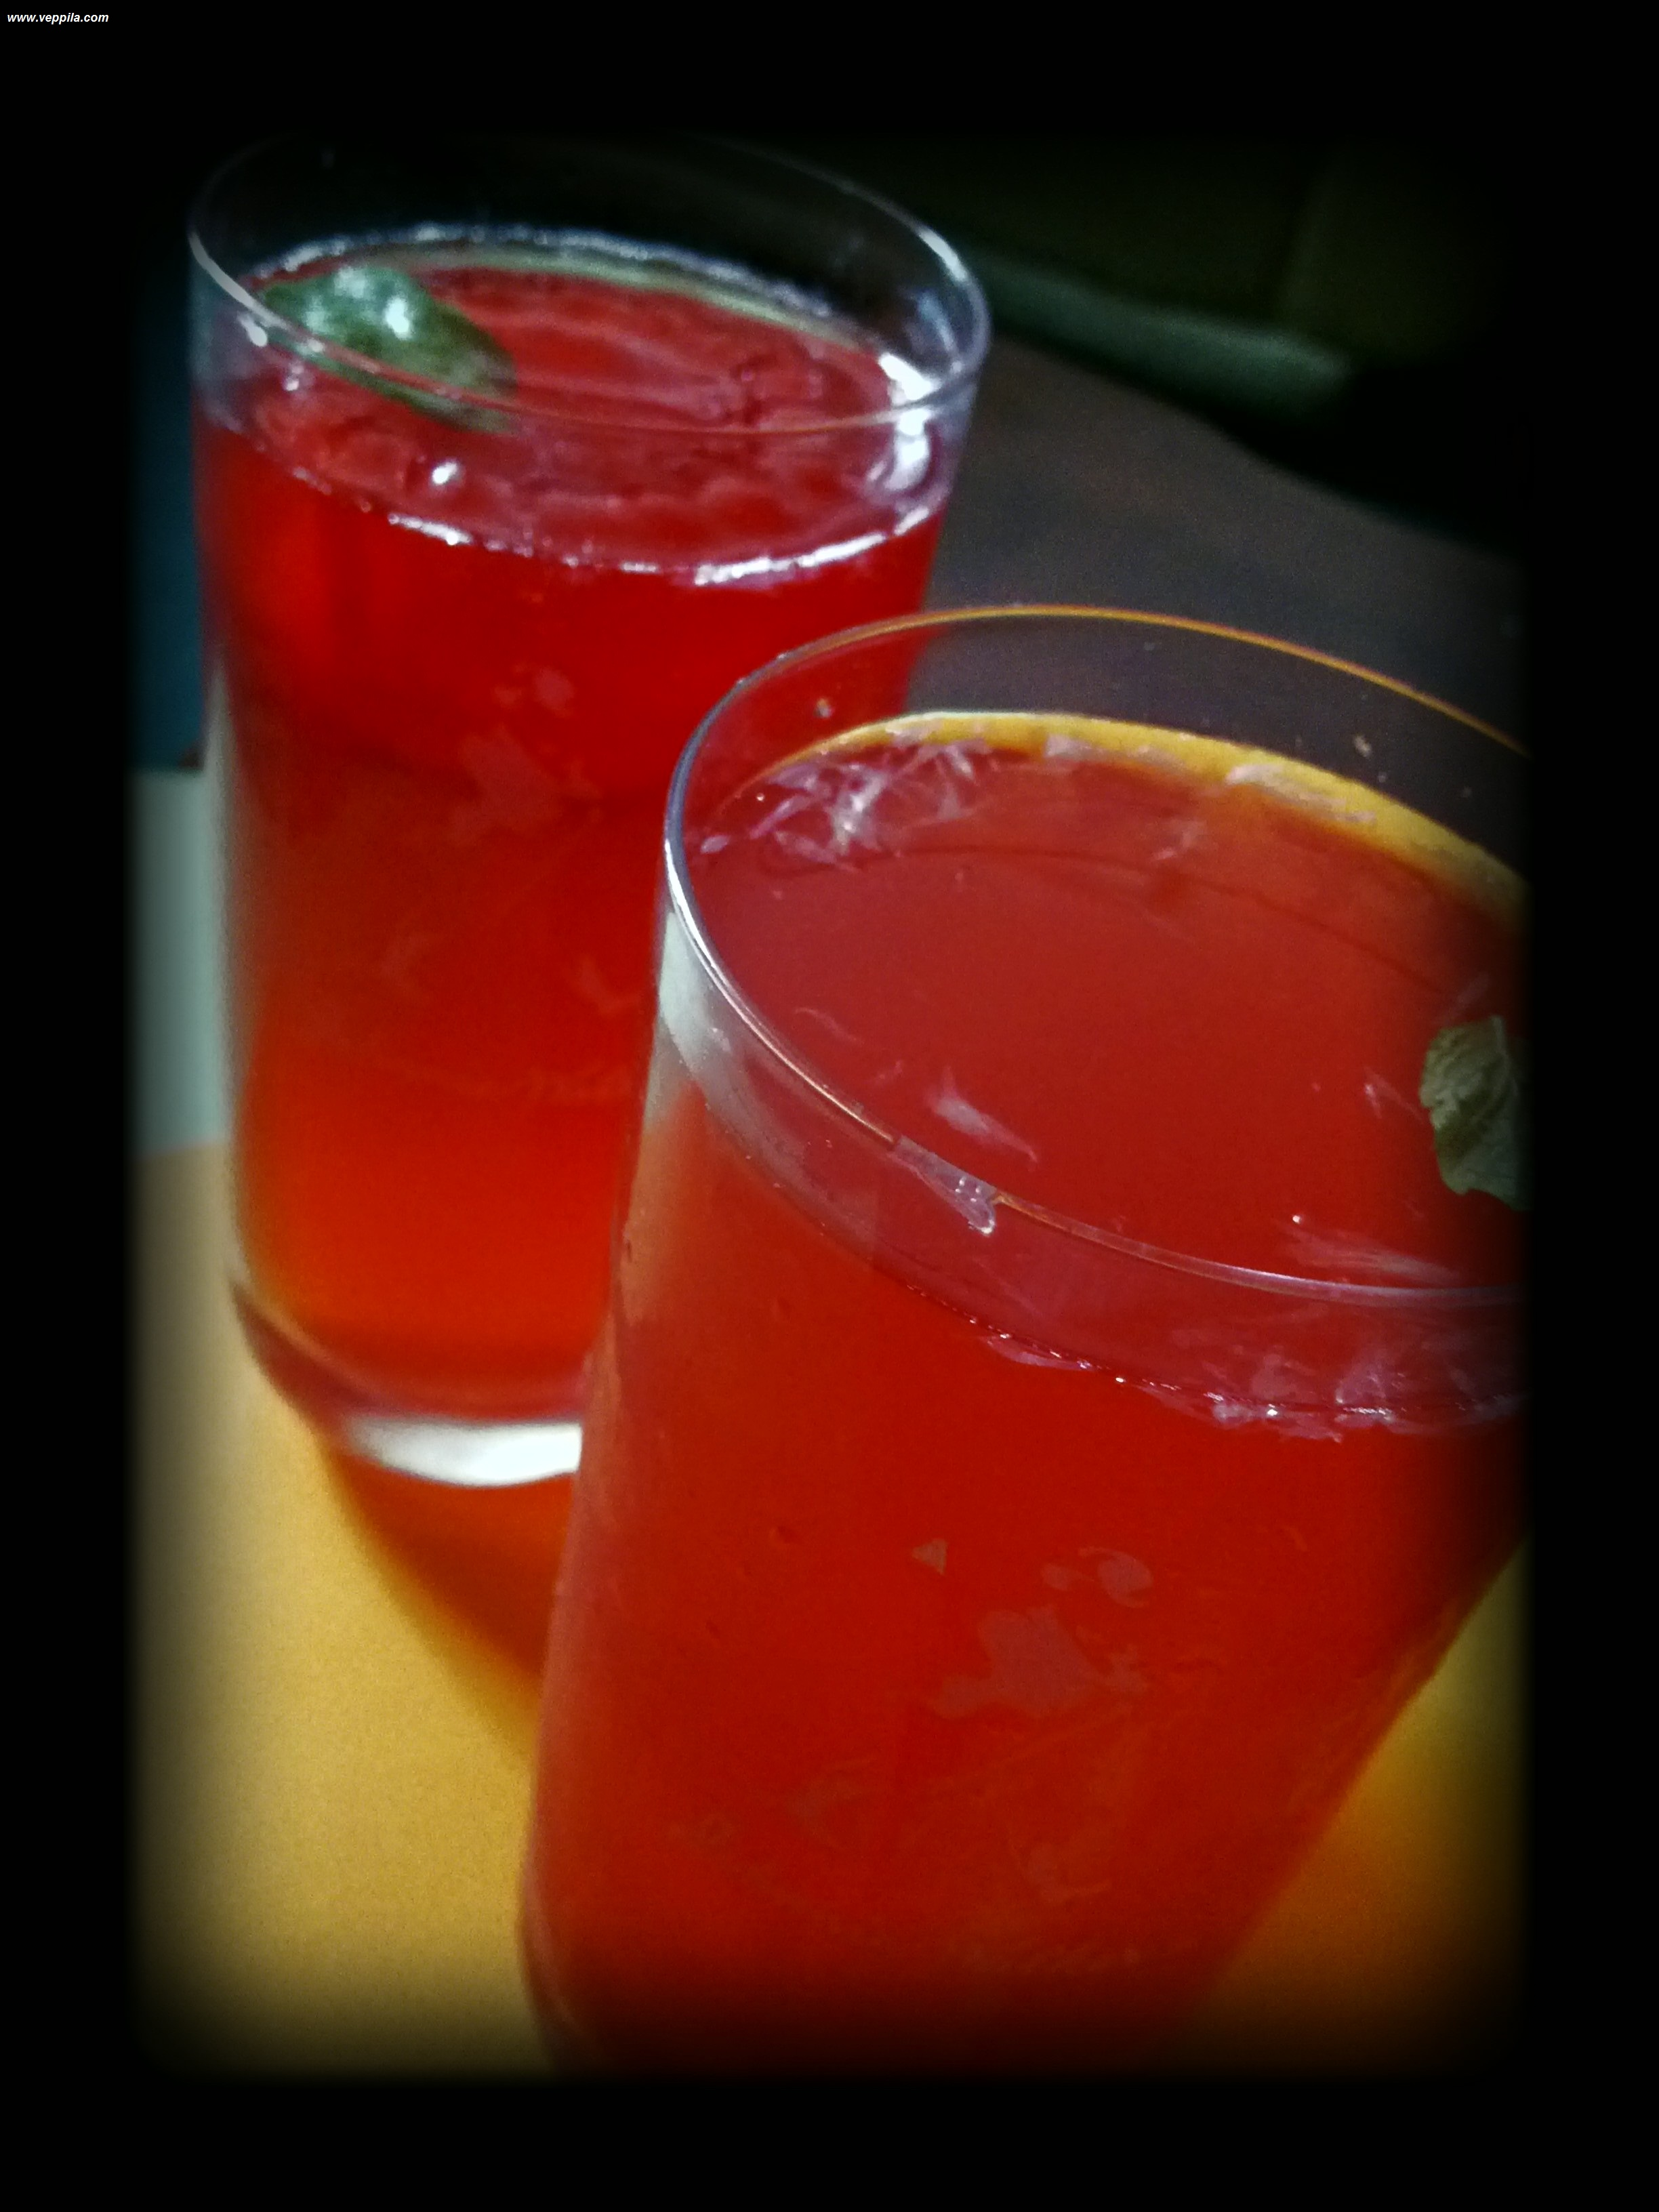 Strawberry Jelly lemonade